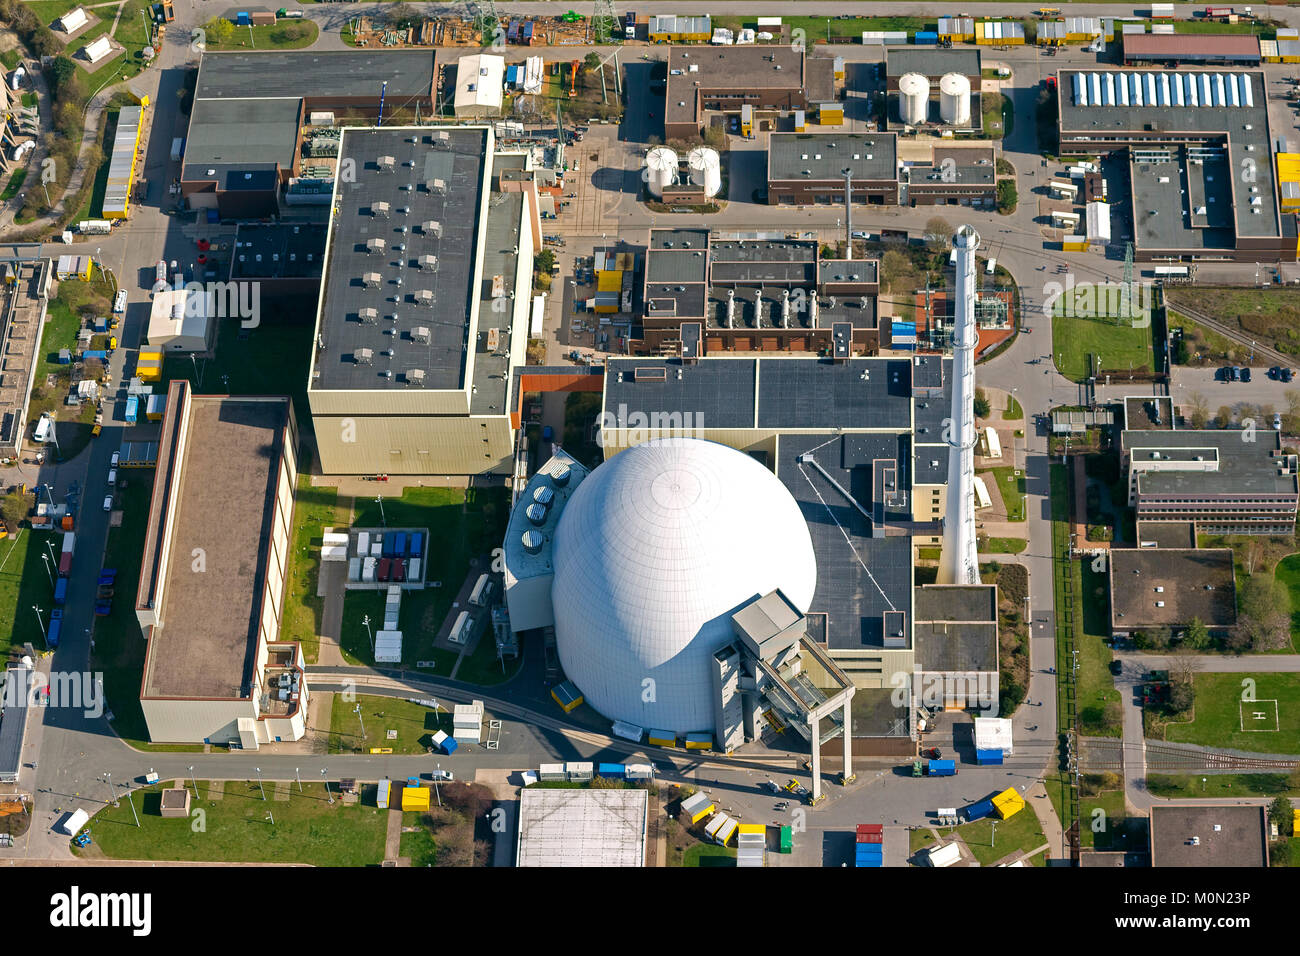 Grohnde nuclear power plant, nuclear power, nuclear power plant on the River Weser, pressurized water reactor from - Stock Image